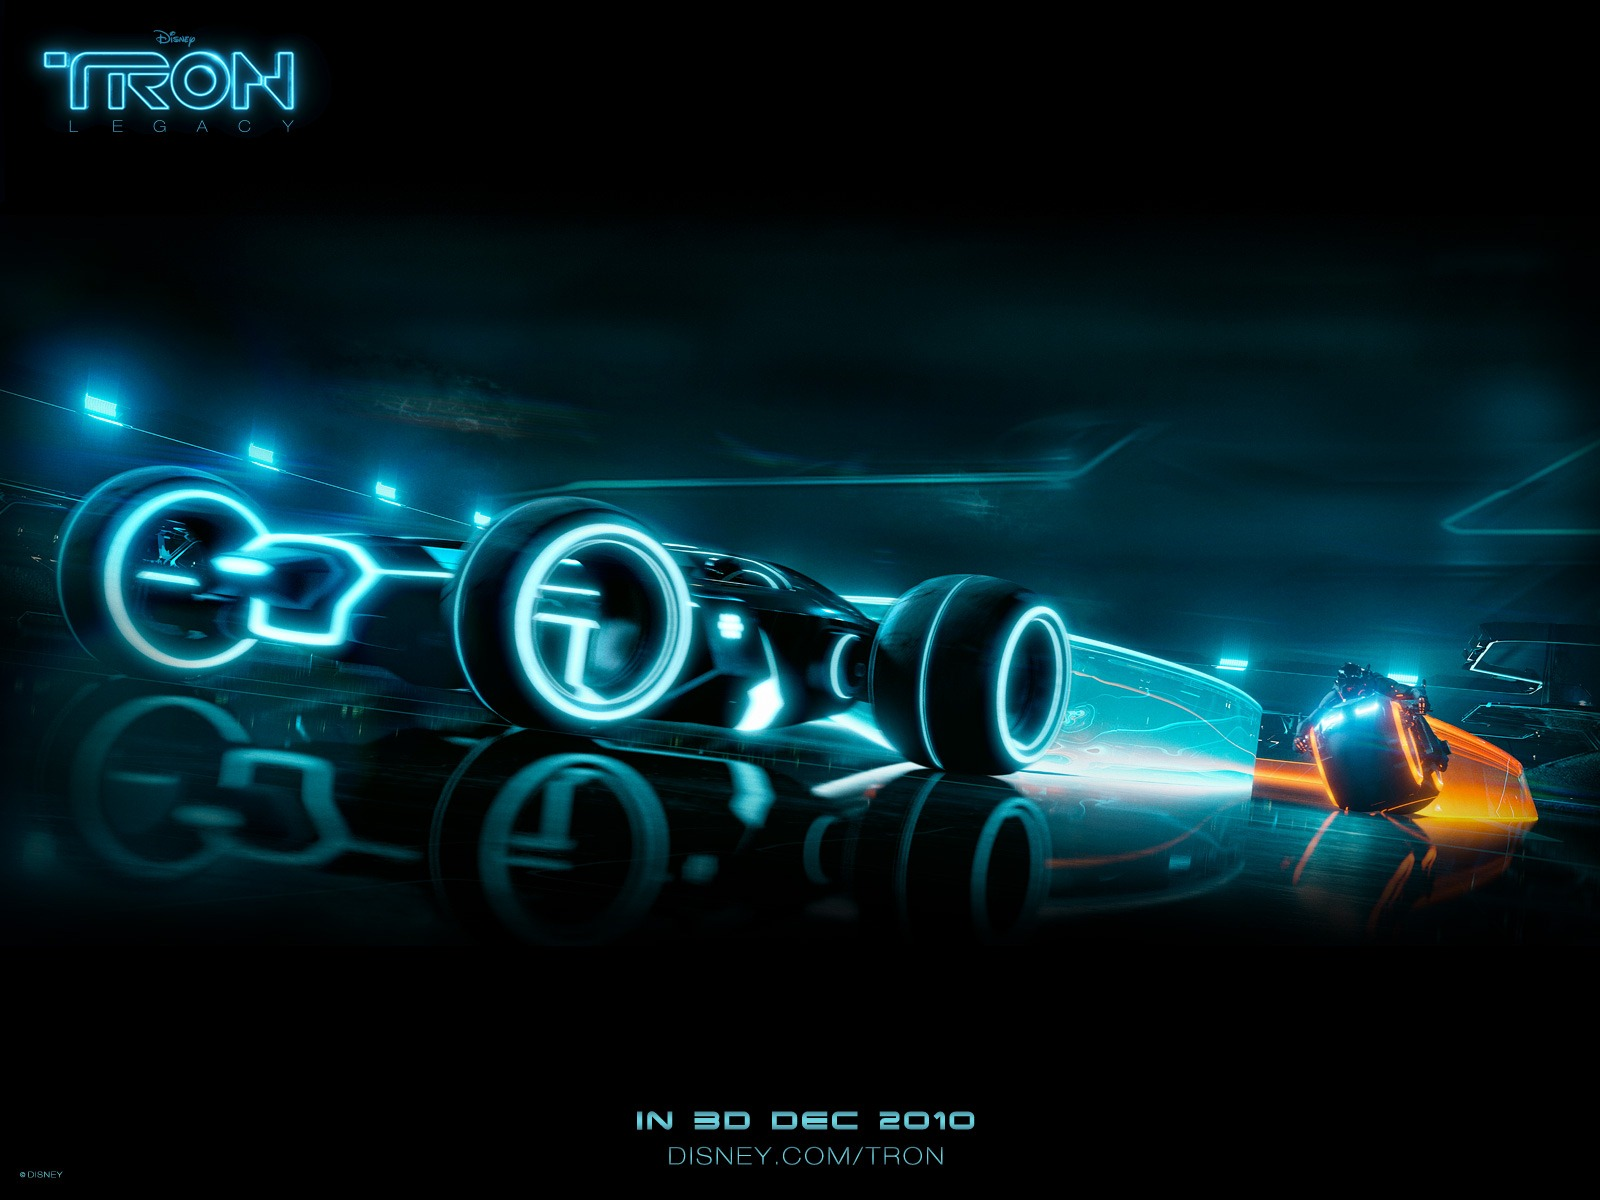 Tron-Legacy-Light-Battle